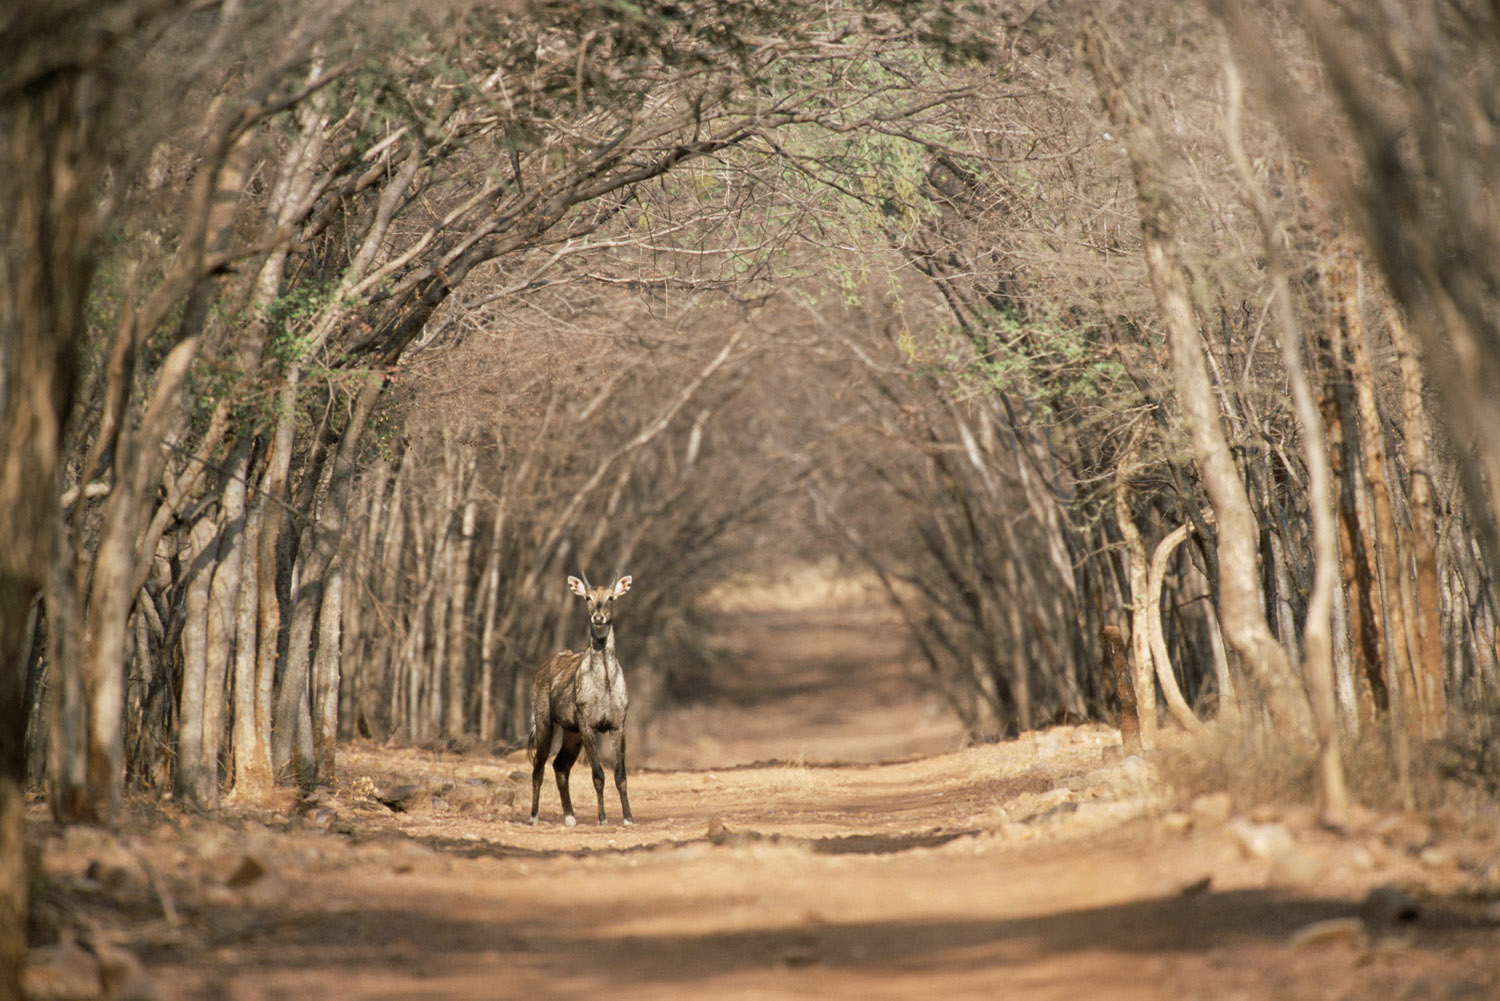 Nilgai on forest track, Ranthambhore National Park, Rajasthan, India